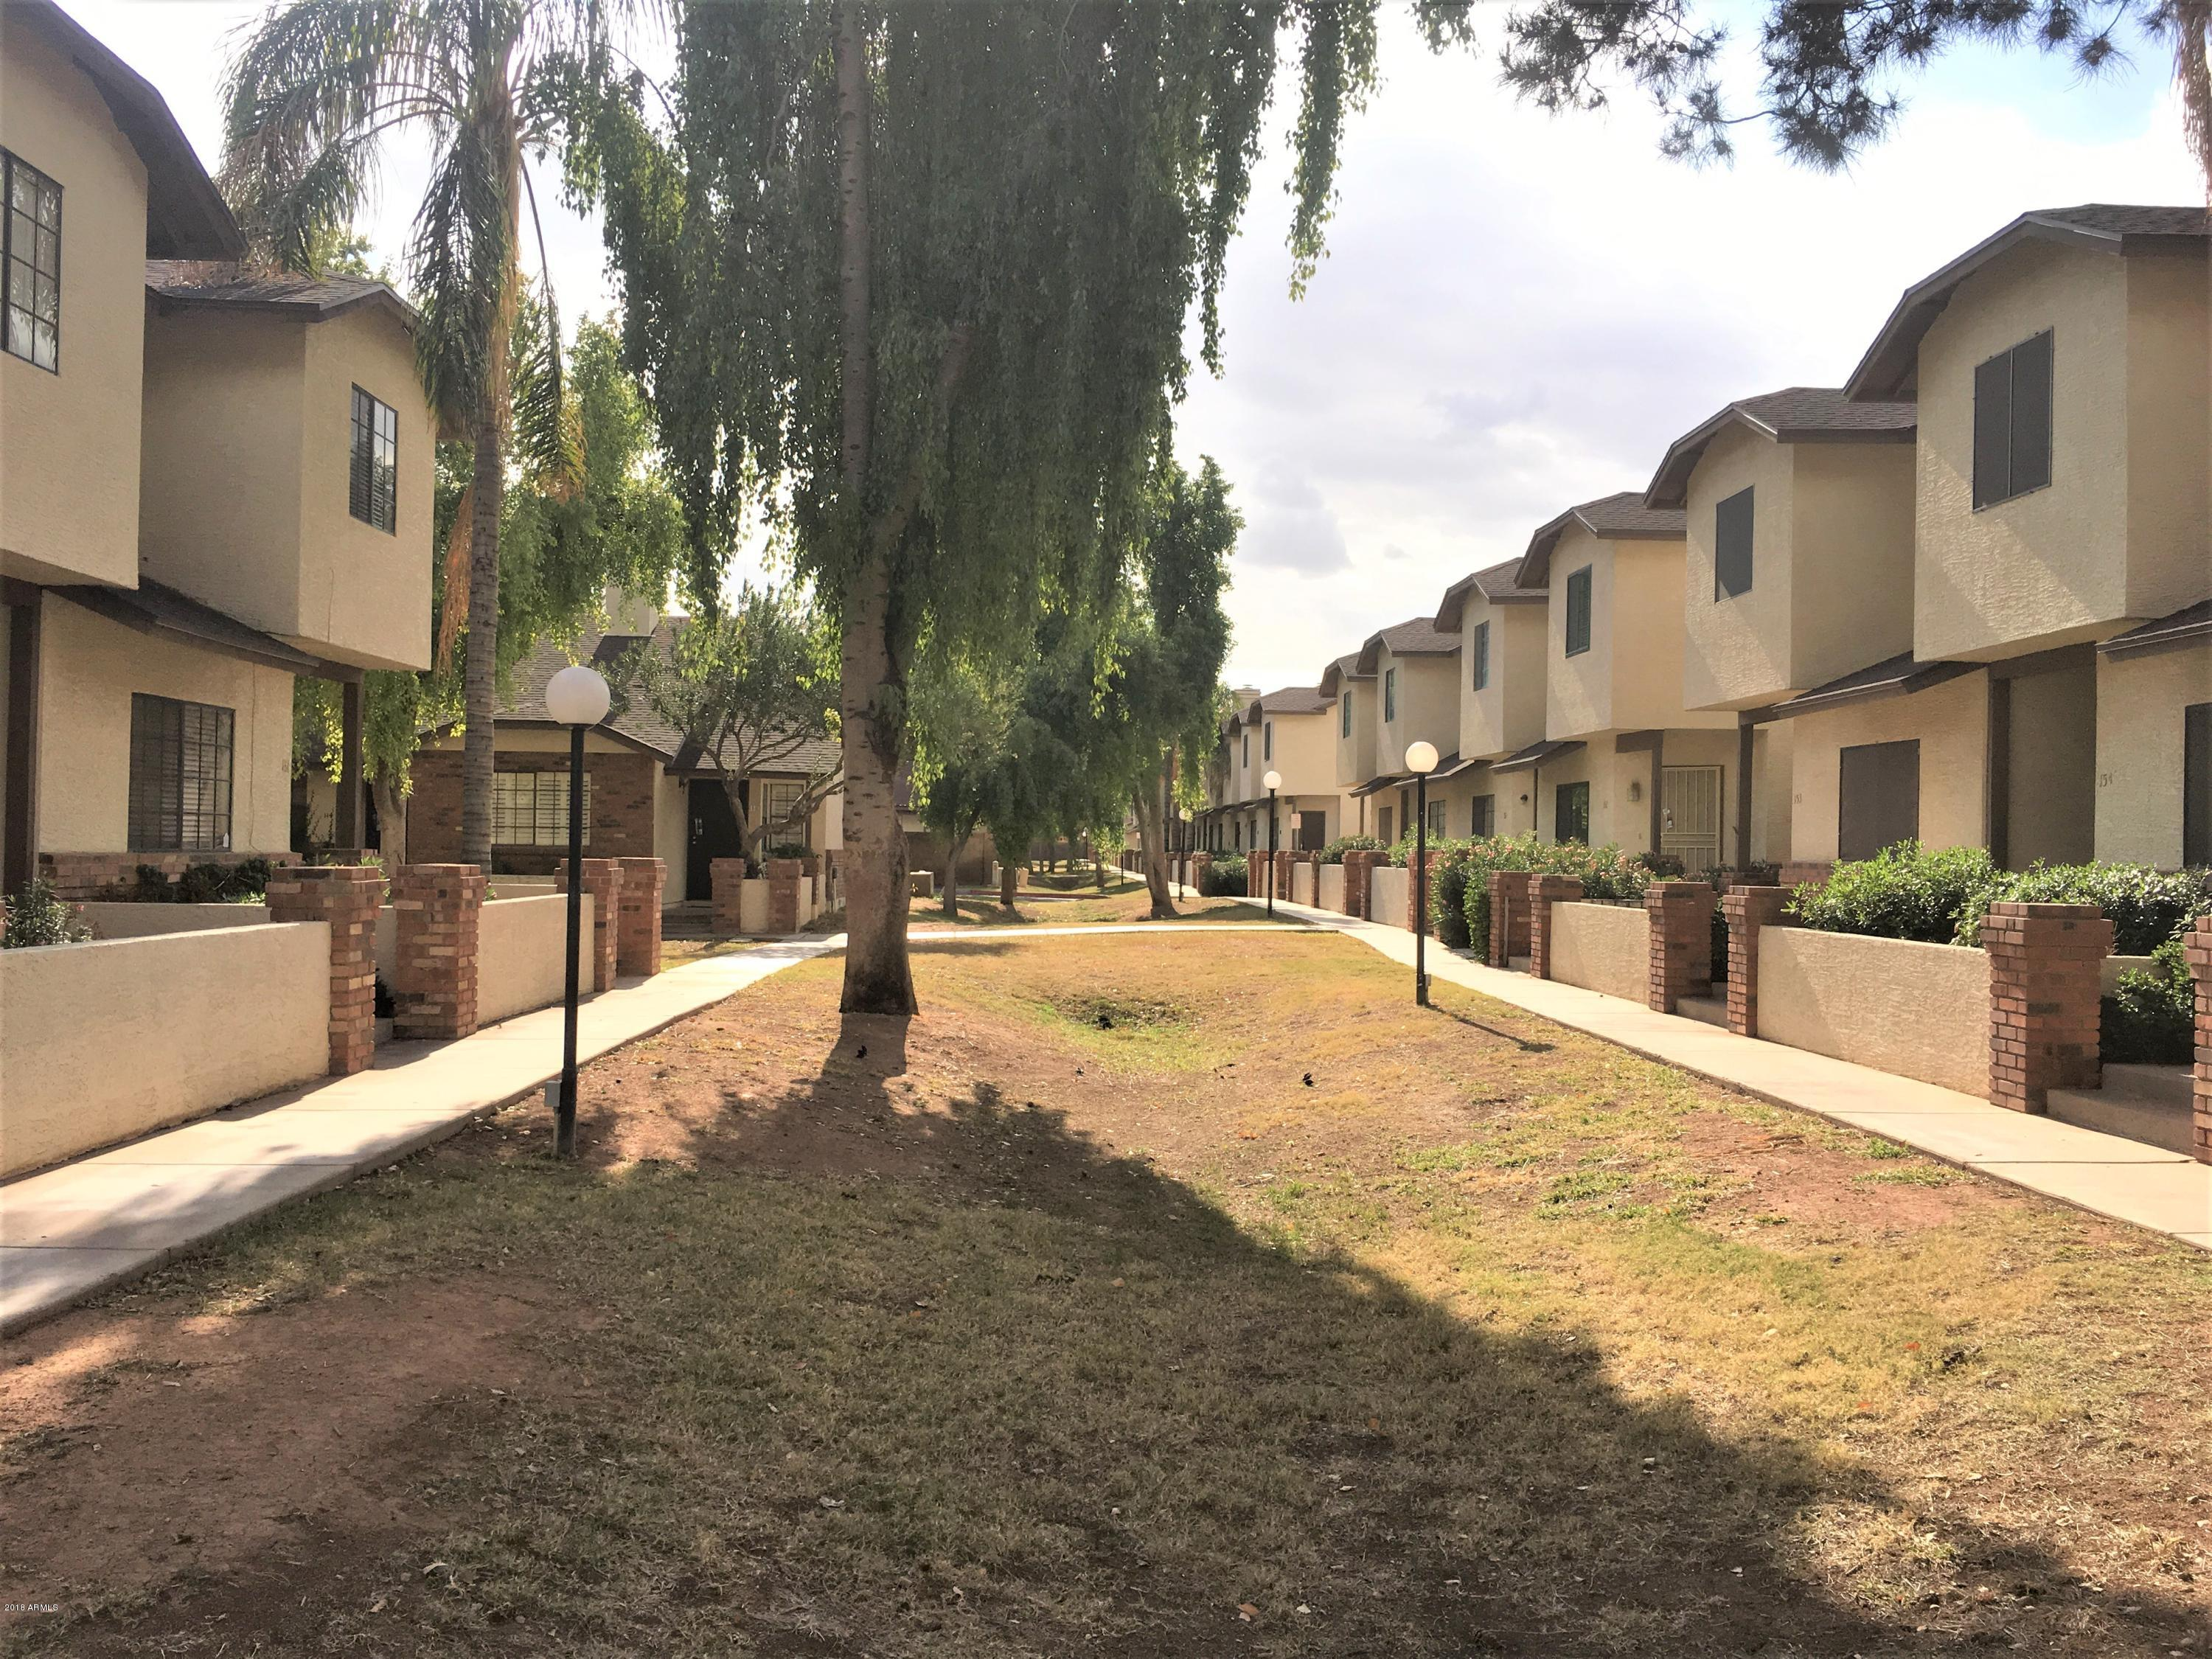 MLS 5851493 170 E GUADALUPE Road Unit 153, Gilbert, AZ Gilbert AZ Condo or Townhome